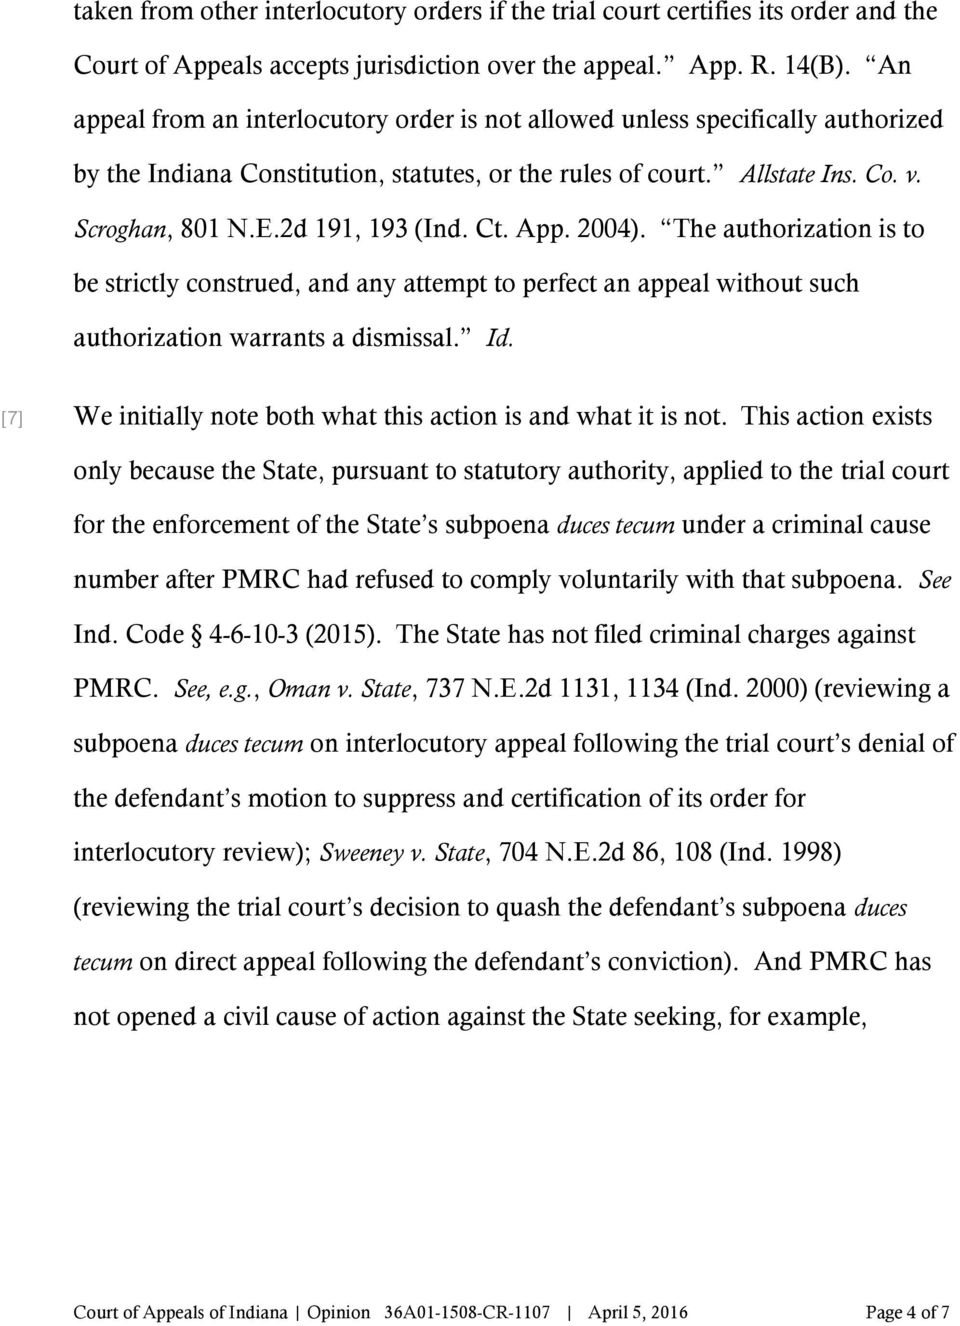 2d 191, 193 (Ind. Ct. App. 2004). The authorization is to be strictly construed, and any attempt to perfect an appeal without such authorization warrants a dismissal. Id.